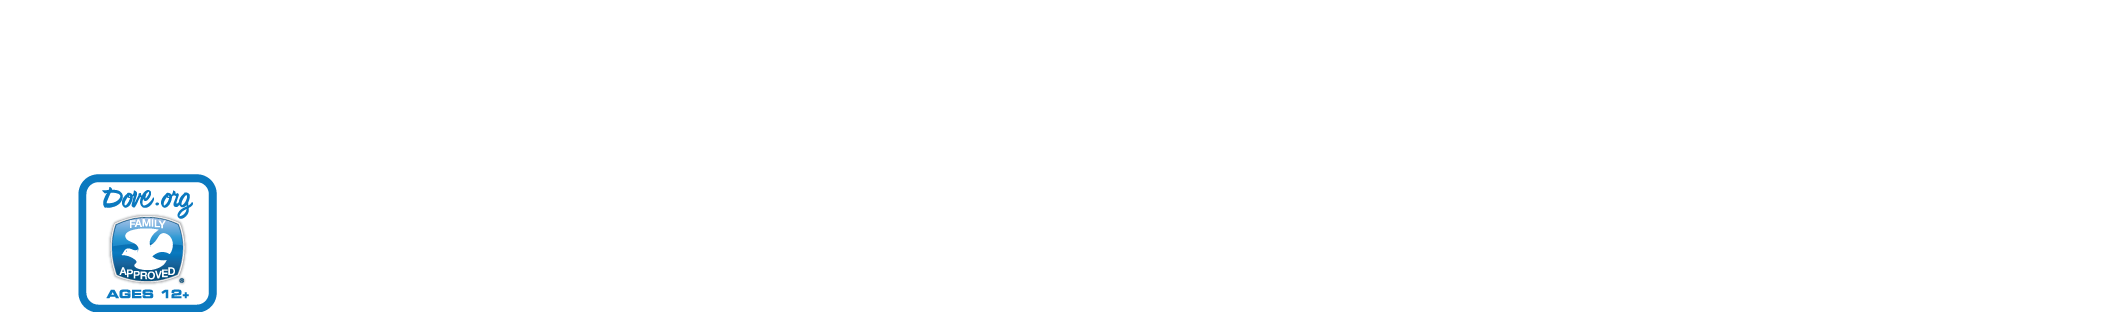 Acts_of_God_Credit_Block.png